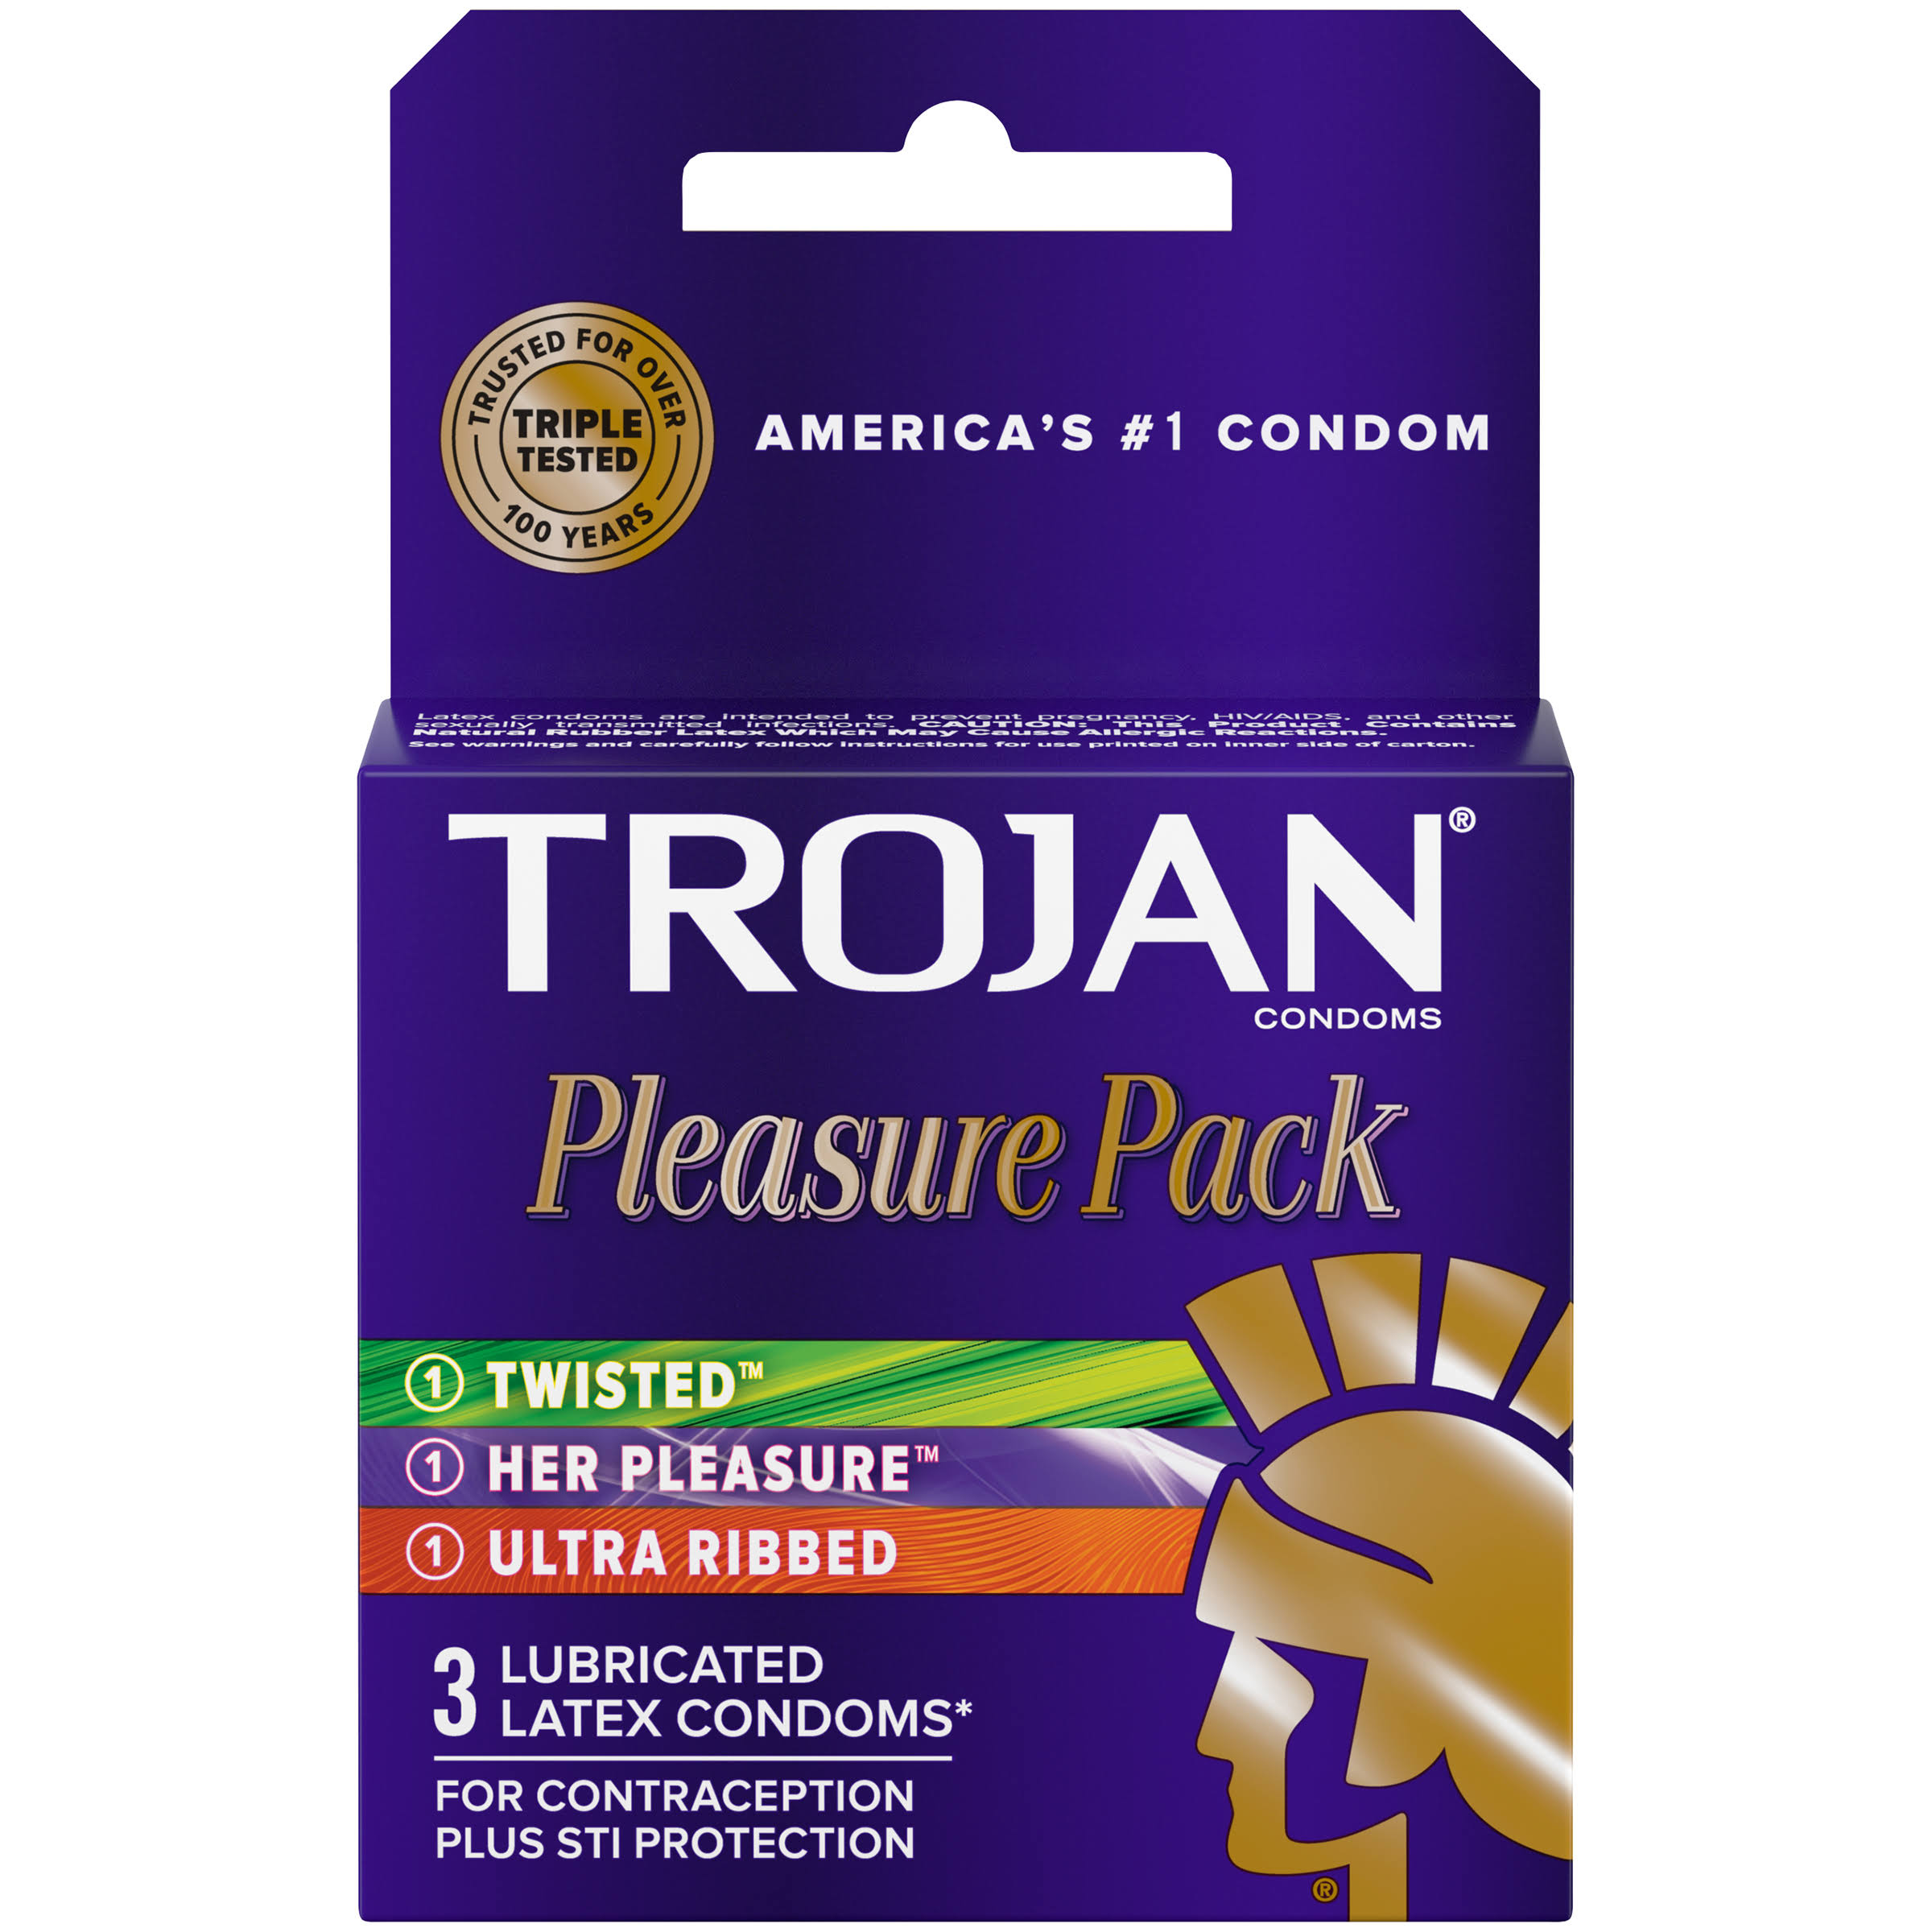 Trojan Pleasure Pack Lubricated Premium Latex Condoms - 3 Count